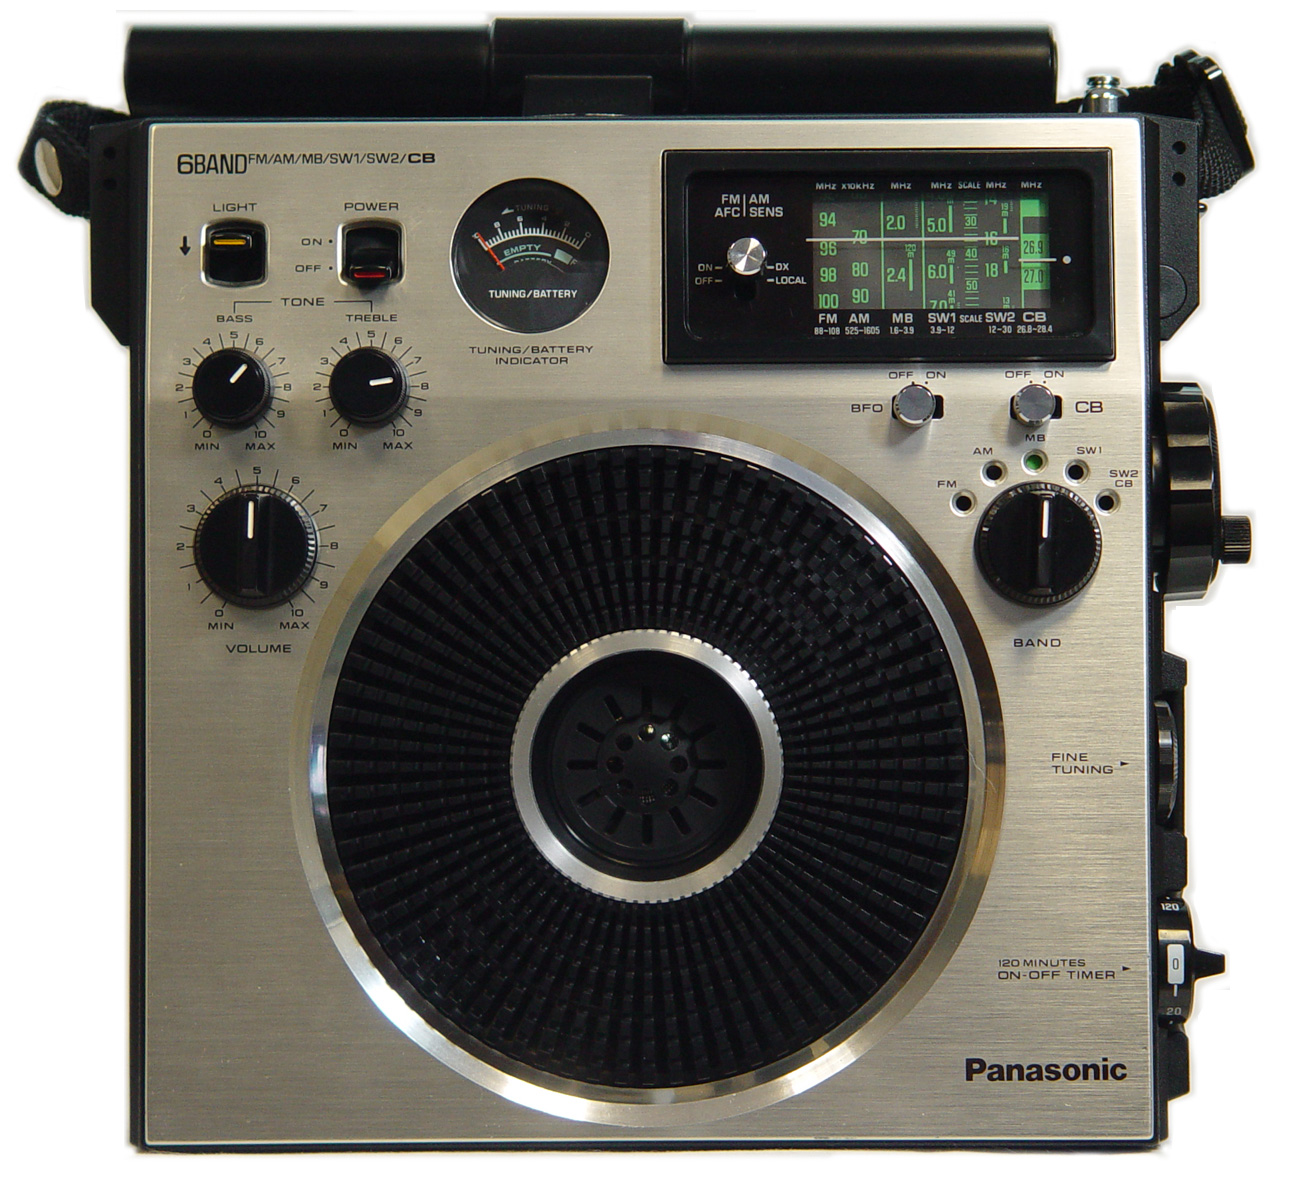 Panasonic Rf1150 Panasonic Rf 1150 Shortwave Radio Receiver